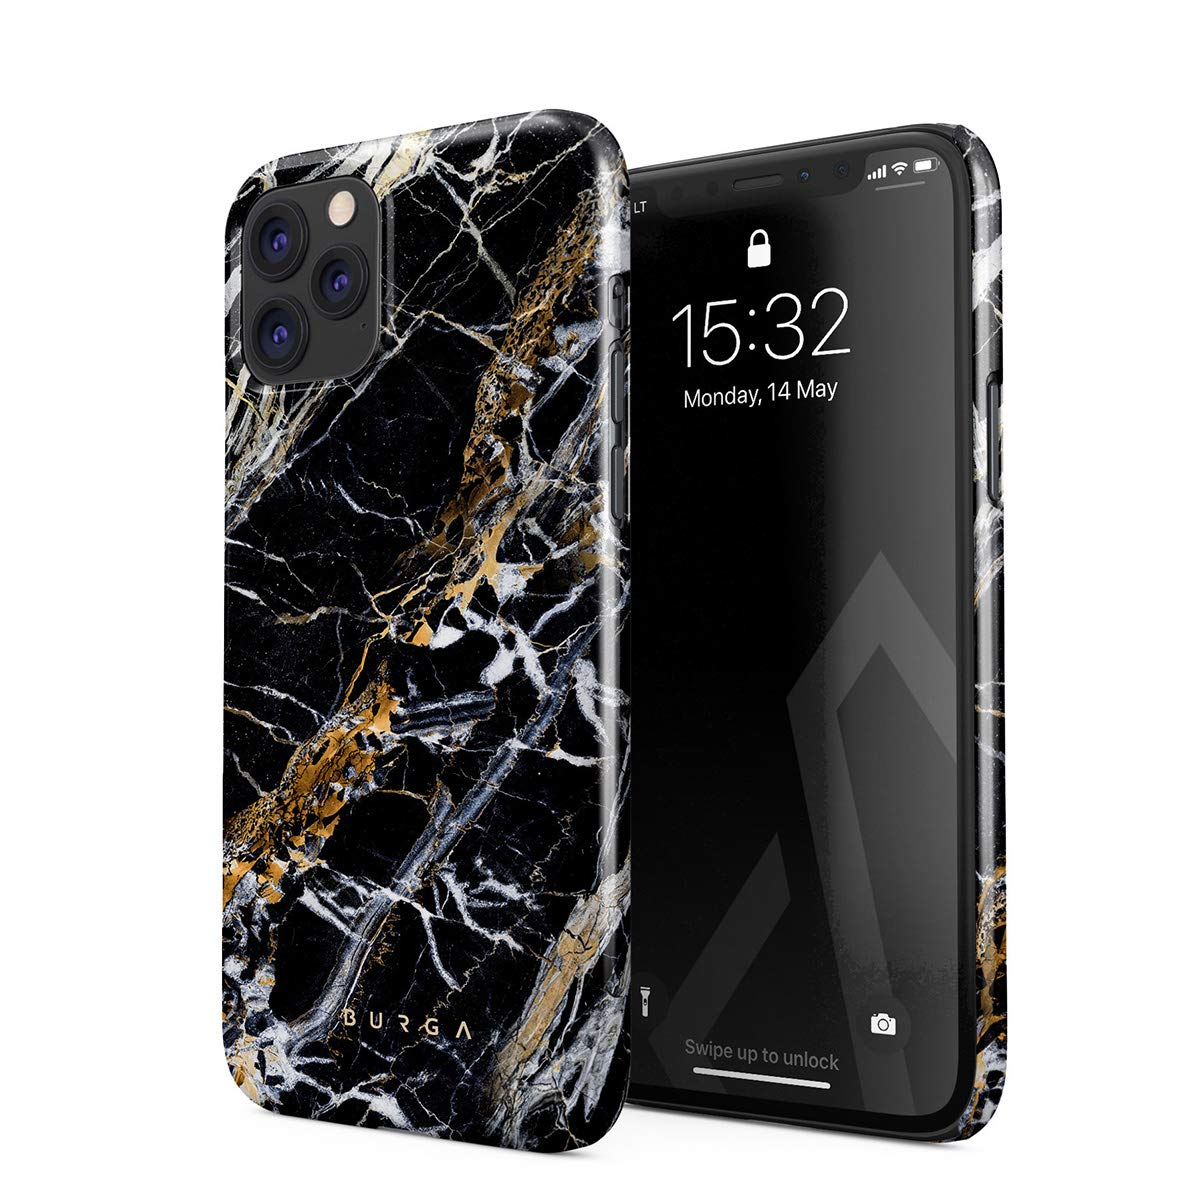 BURGA Phone Case Compatible with iPhone 11 PRO MAX - Black and Gold Onyx Marble Golden Stone Cute Case for Women Thin Design Durable Hard Plastic Protective Case